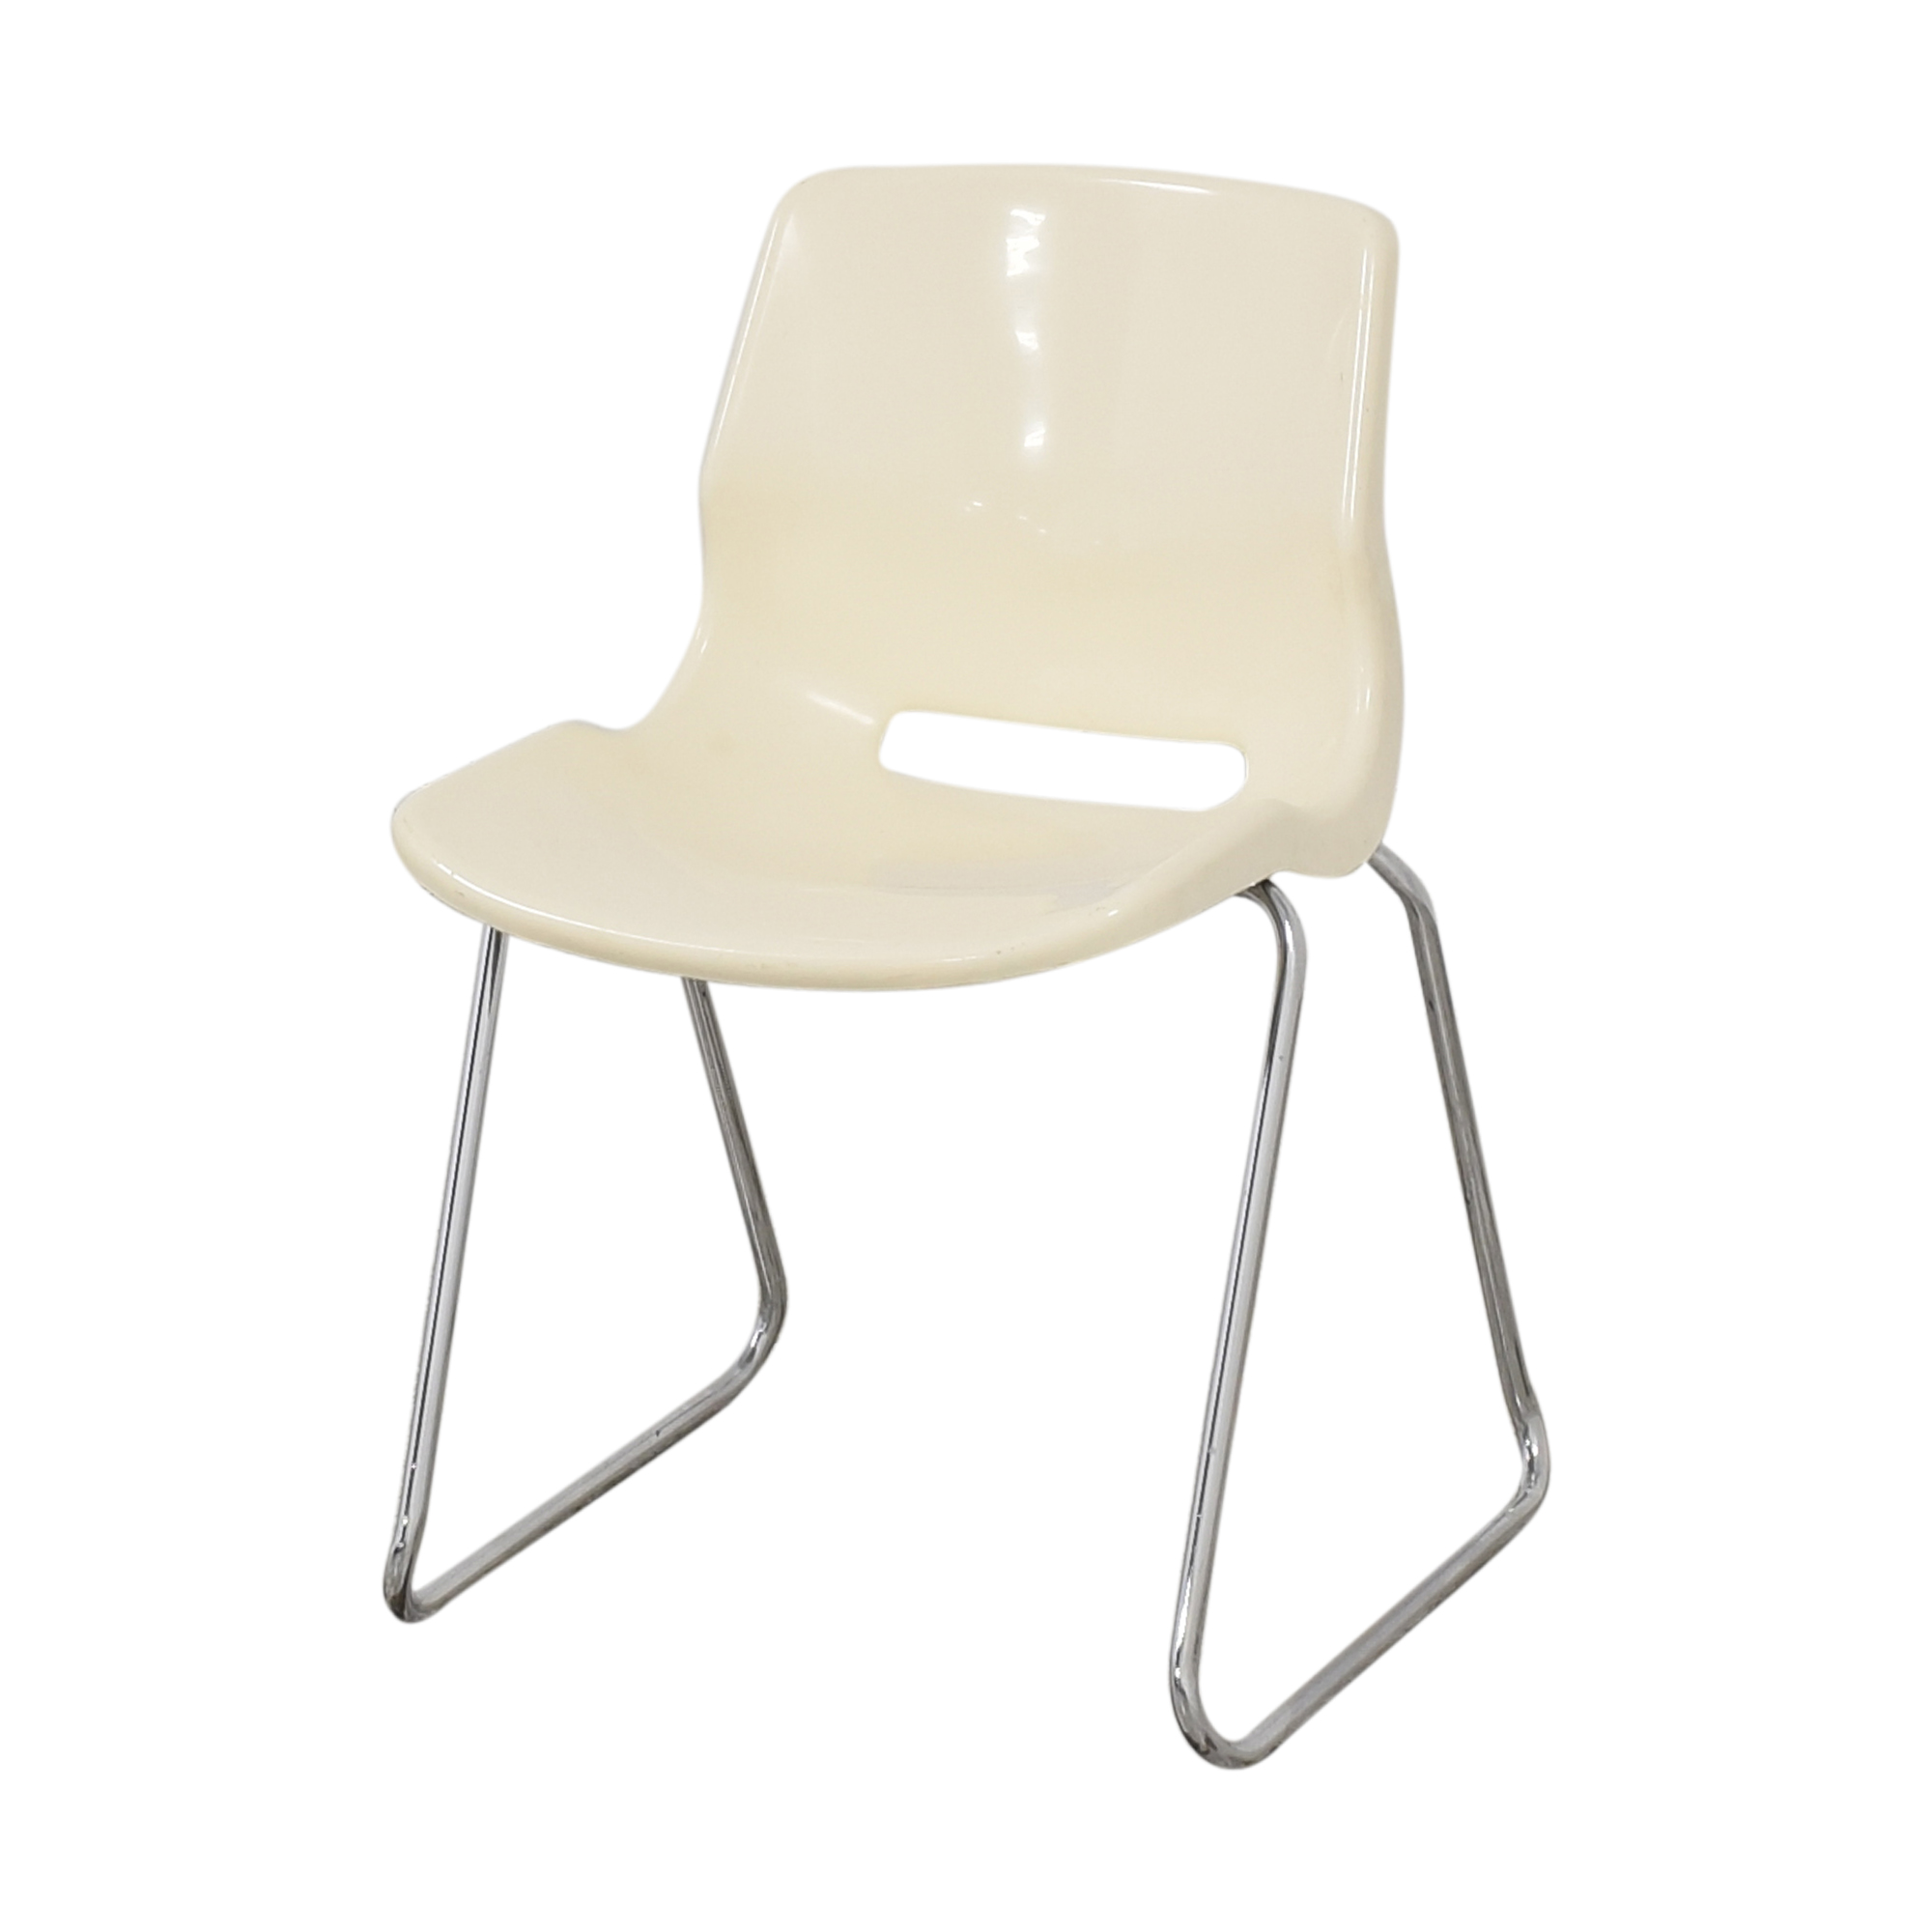 shop Overman by Svante Schoblom Swedish Stacking Dining Chairs Overman